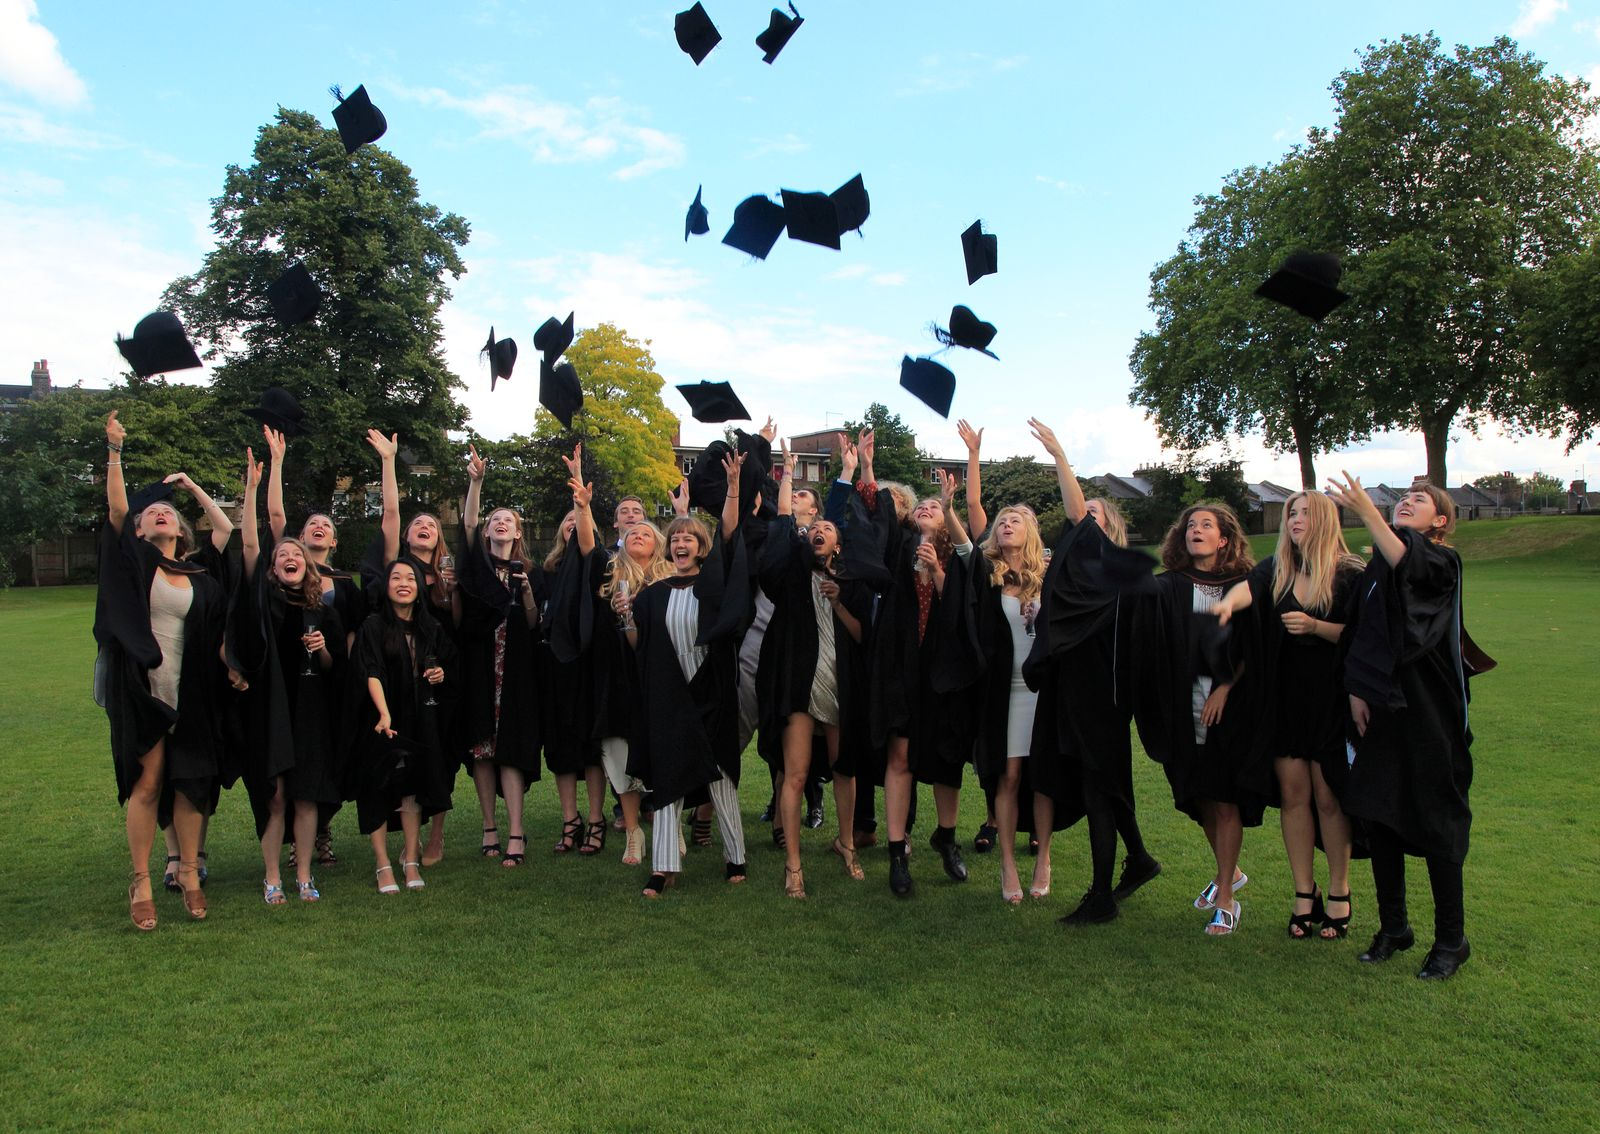 Graduates in gowns throwing their mortarboards into the air, Goldsmiths, University of London, England, UK